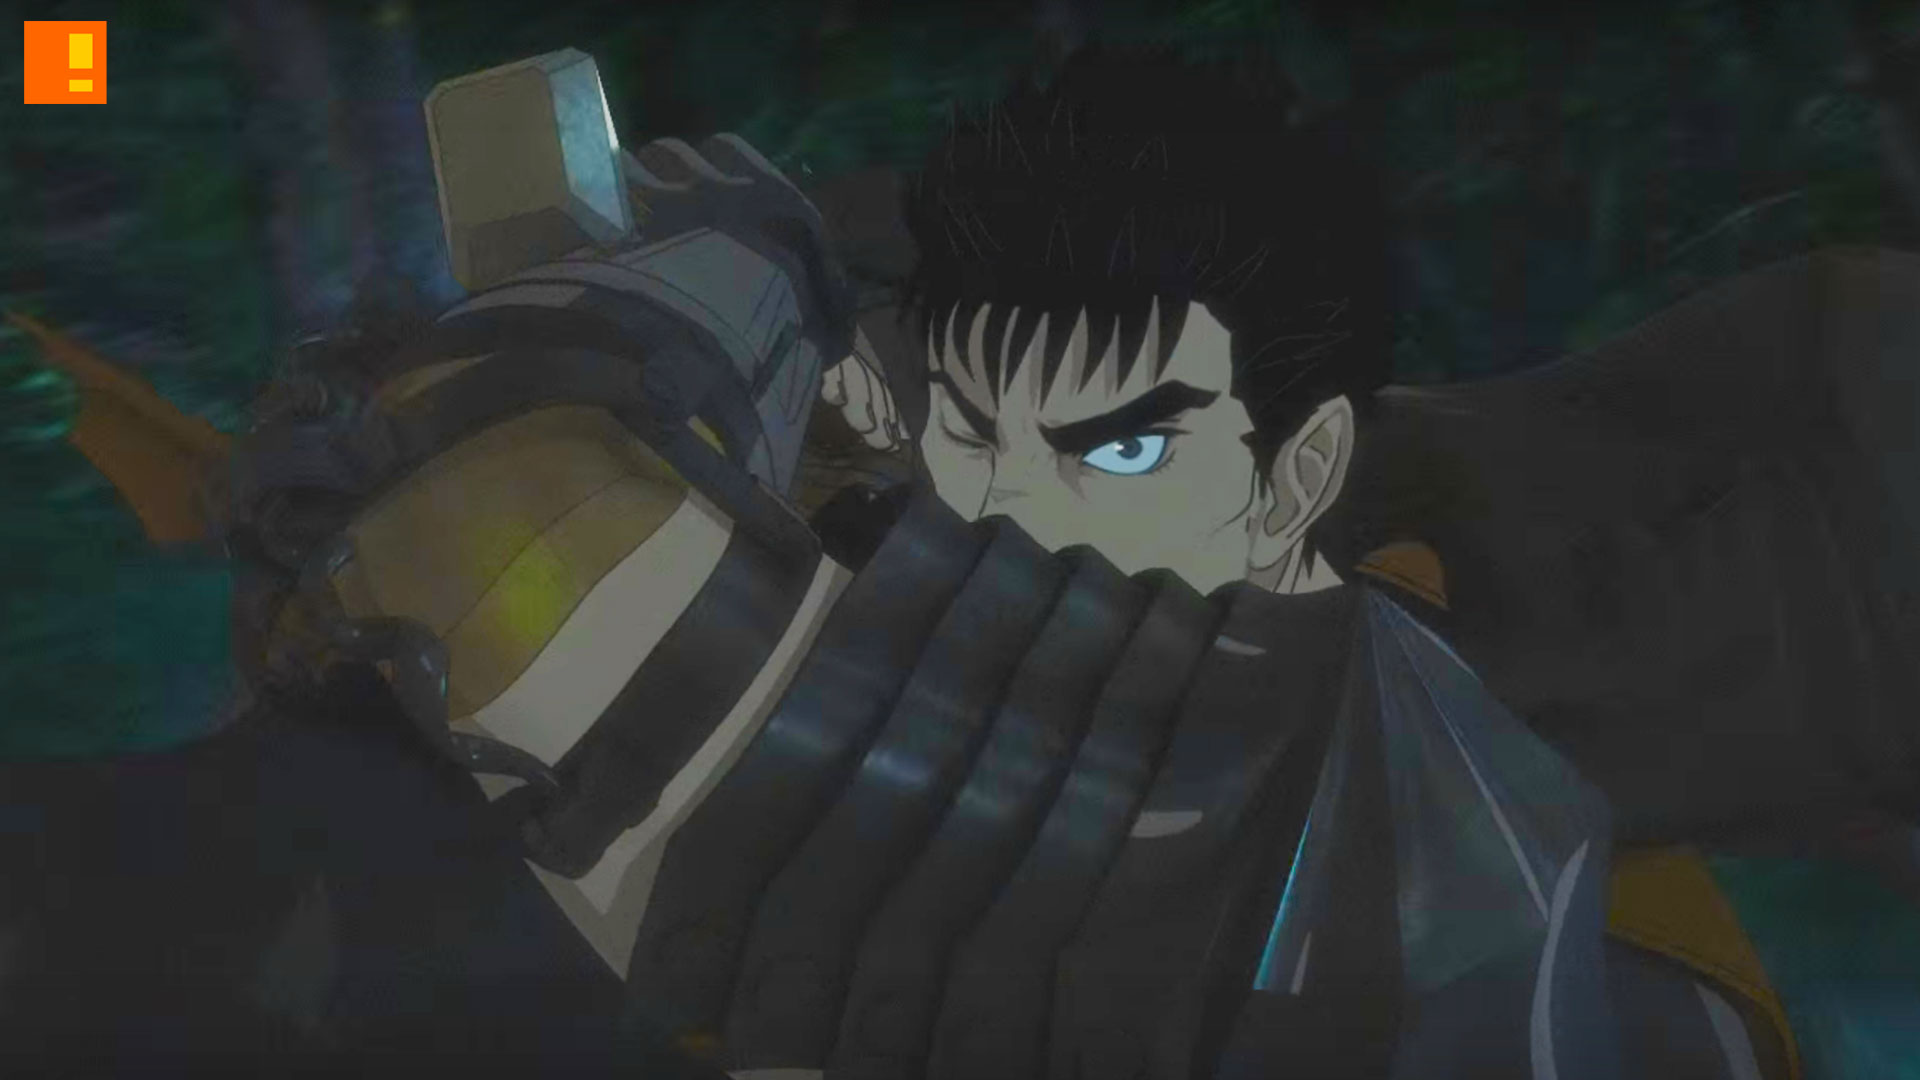 berserk anime. the action pixel. @theactionpixel. entertainment on tap